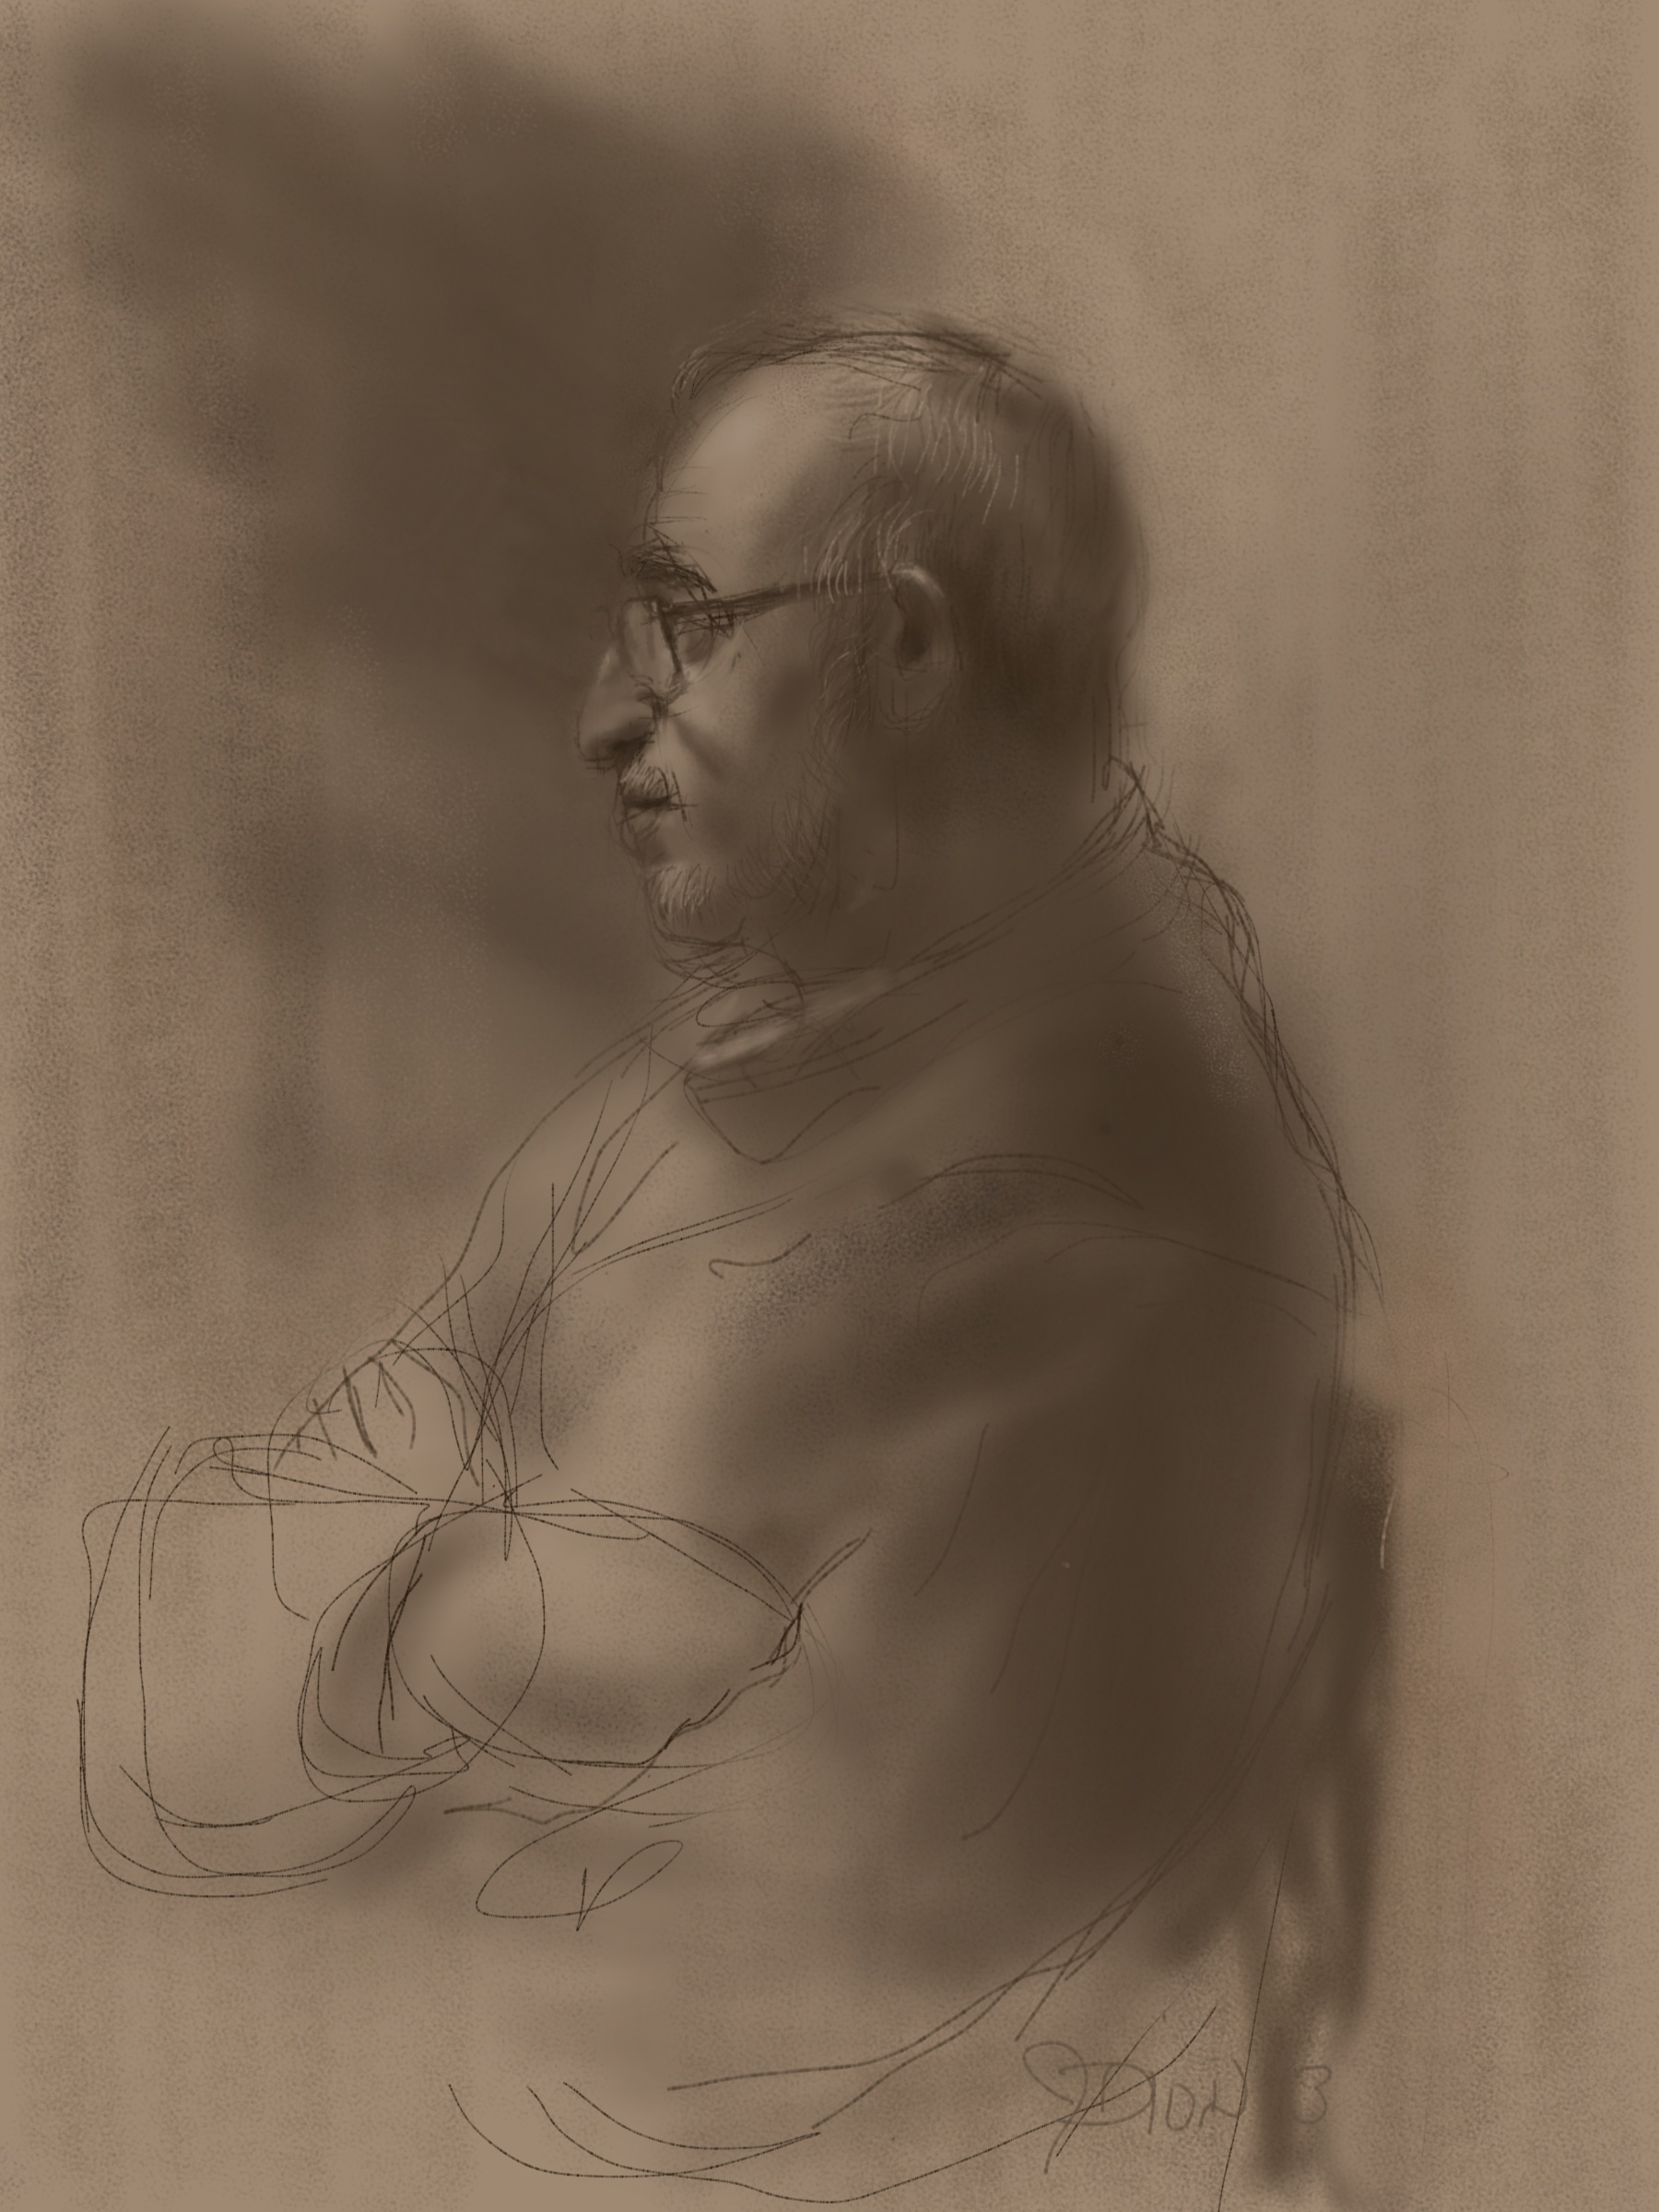 Drawing of the Artists father - Sketchbok Pro.JPG